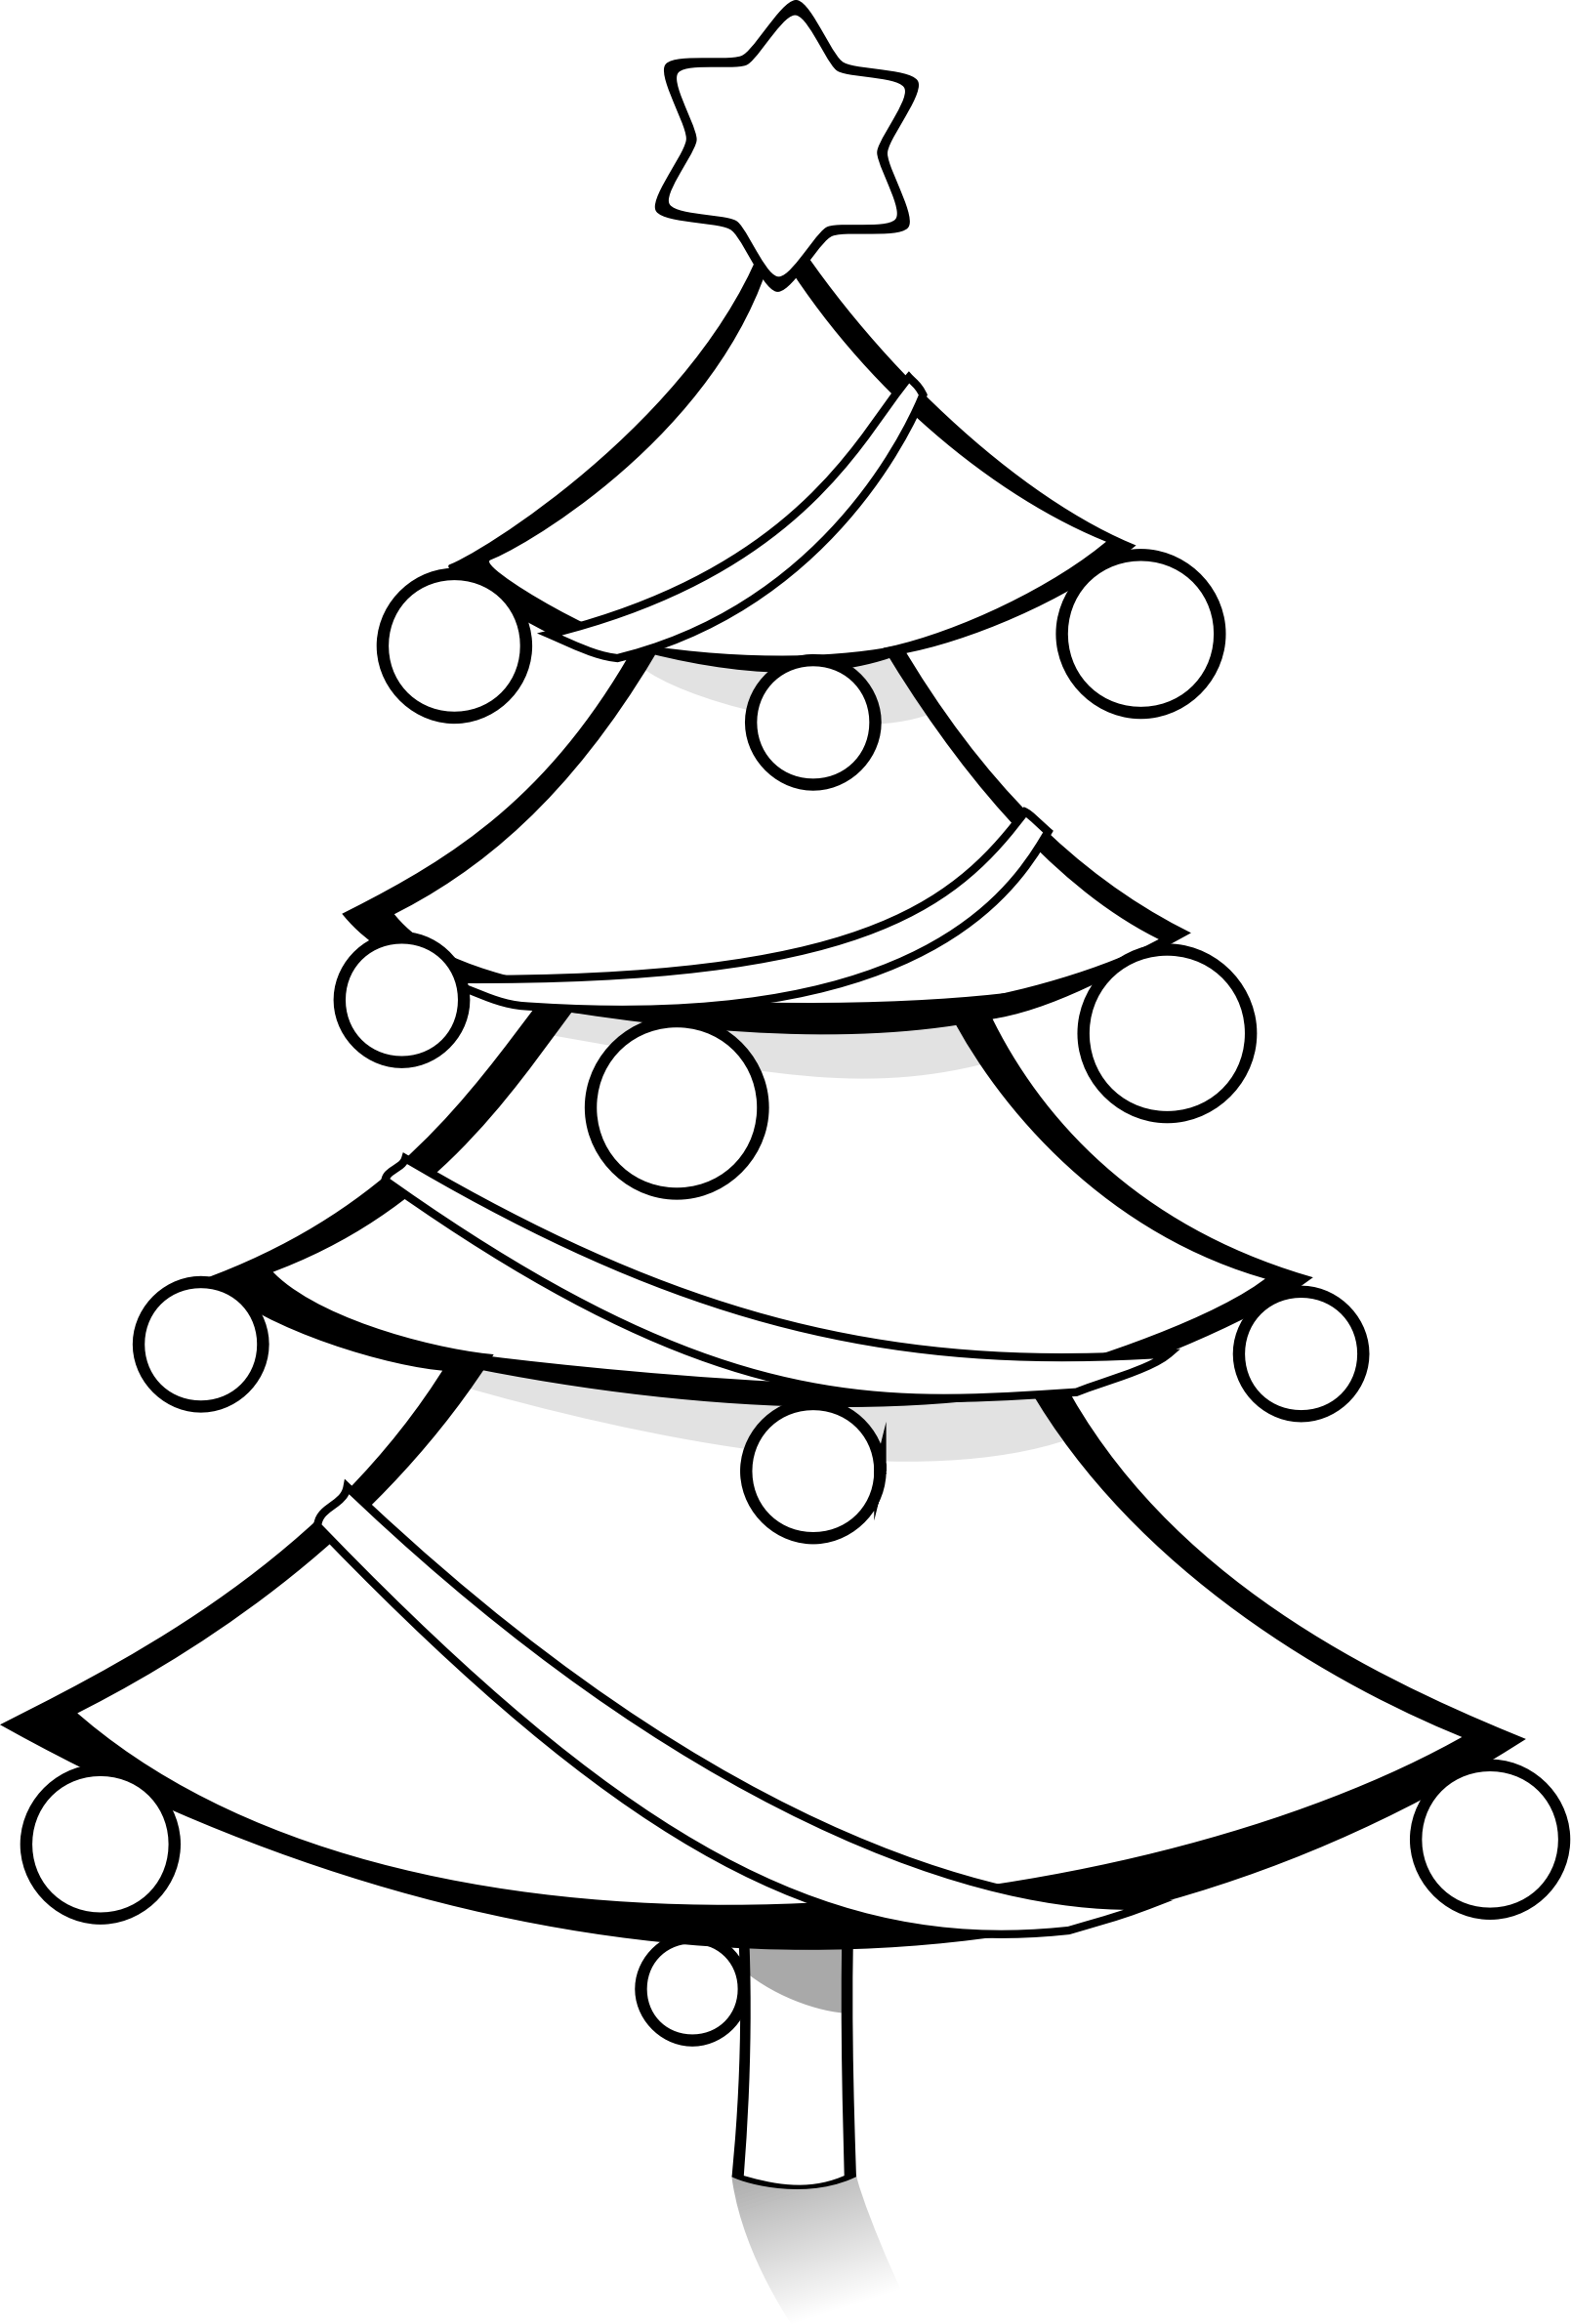 coloring christmas tree black and white printable coloring pages black coloring tree christmas white and